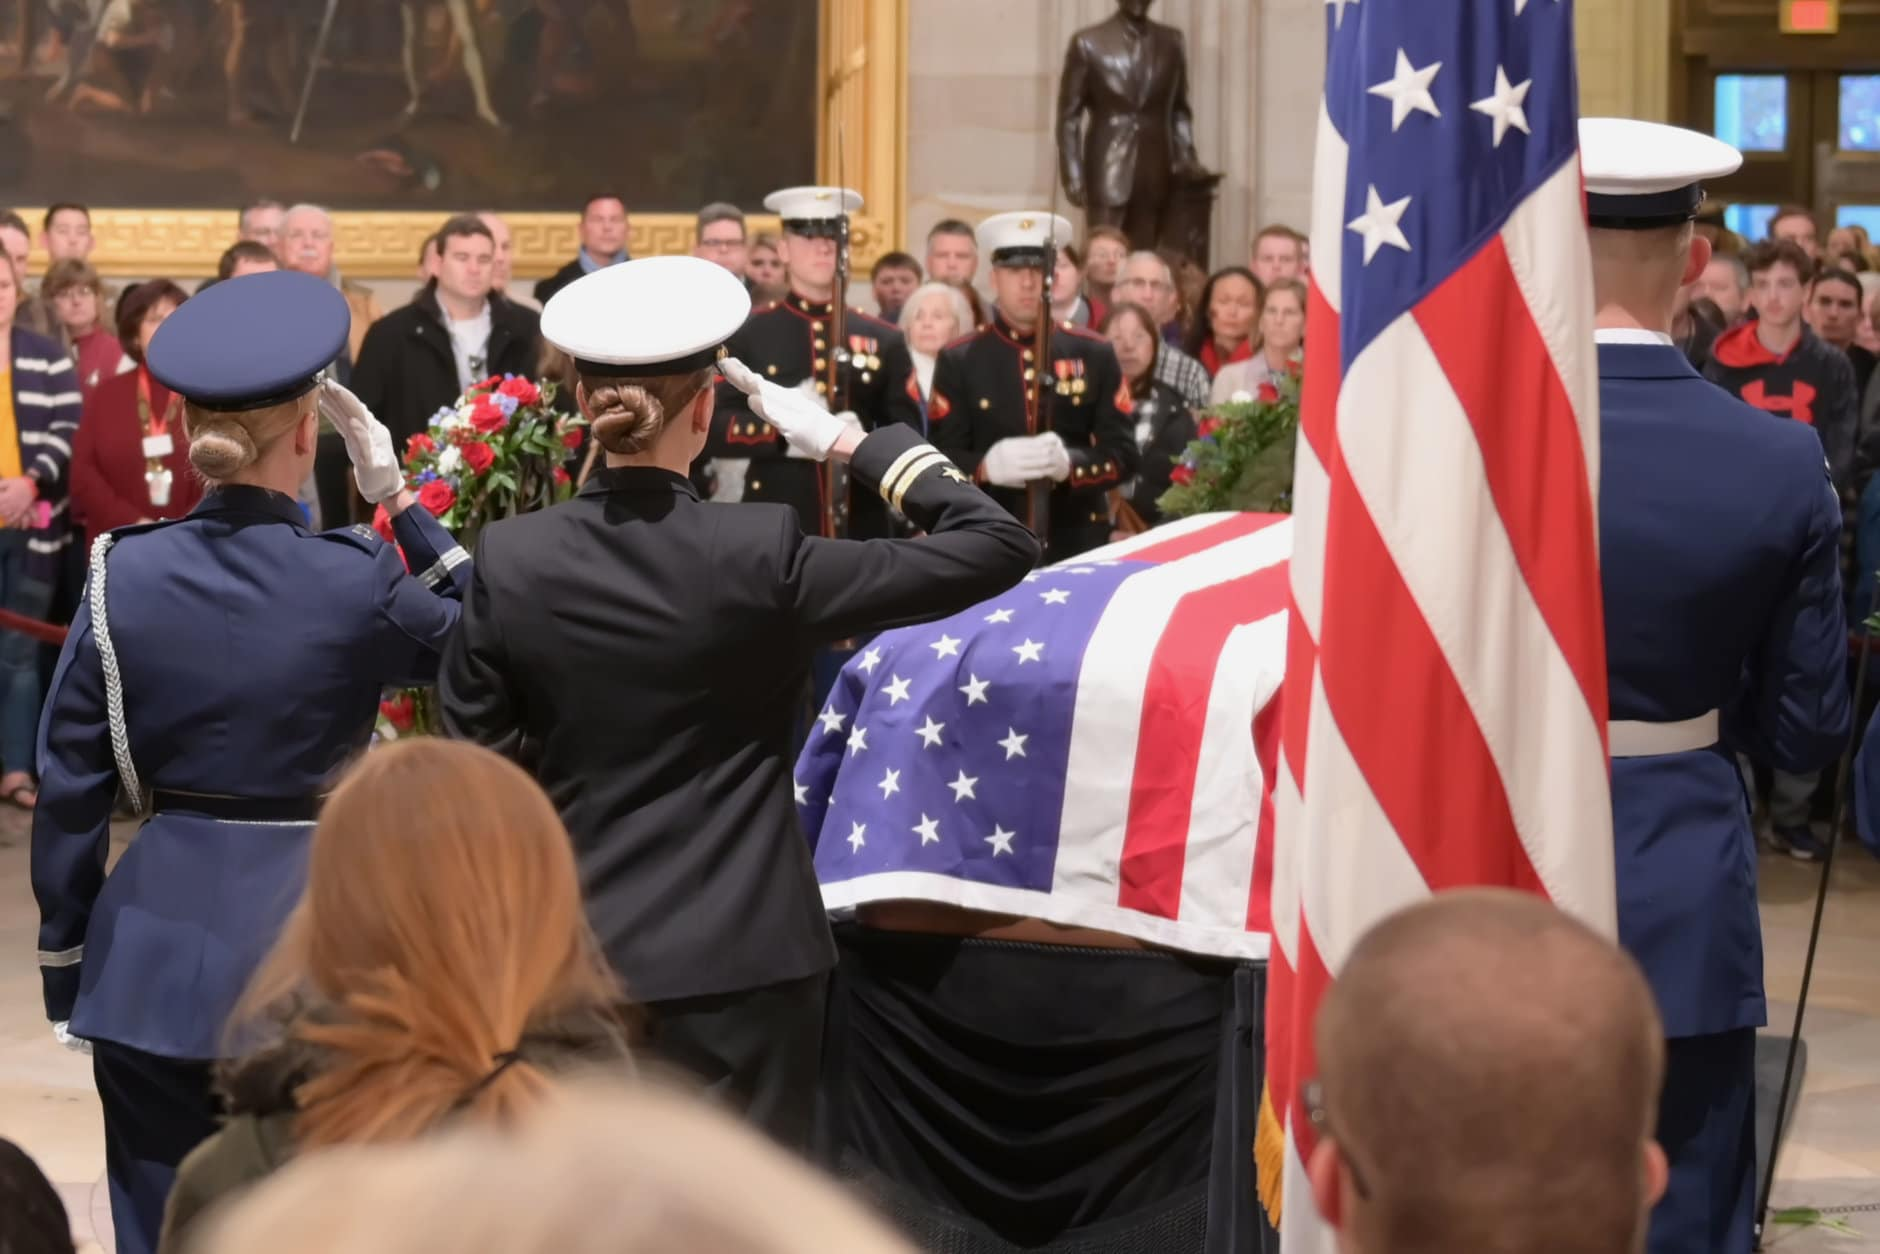 "Soldiers exchange a salute during the Changing of the Guard at the late President George H.W. Bush's lying-in-state on December 4, 2018. (Courtesy Shannon Finney/<a href=""https://www.shannonfinneyphotography.com/index"" target=""_blank"" rel=""noopener noreferrer"">shannonfinneyphotography.com</a>)"